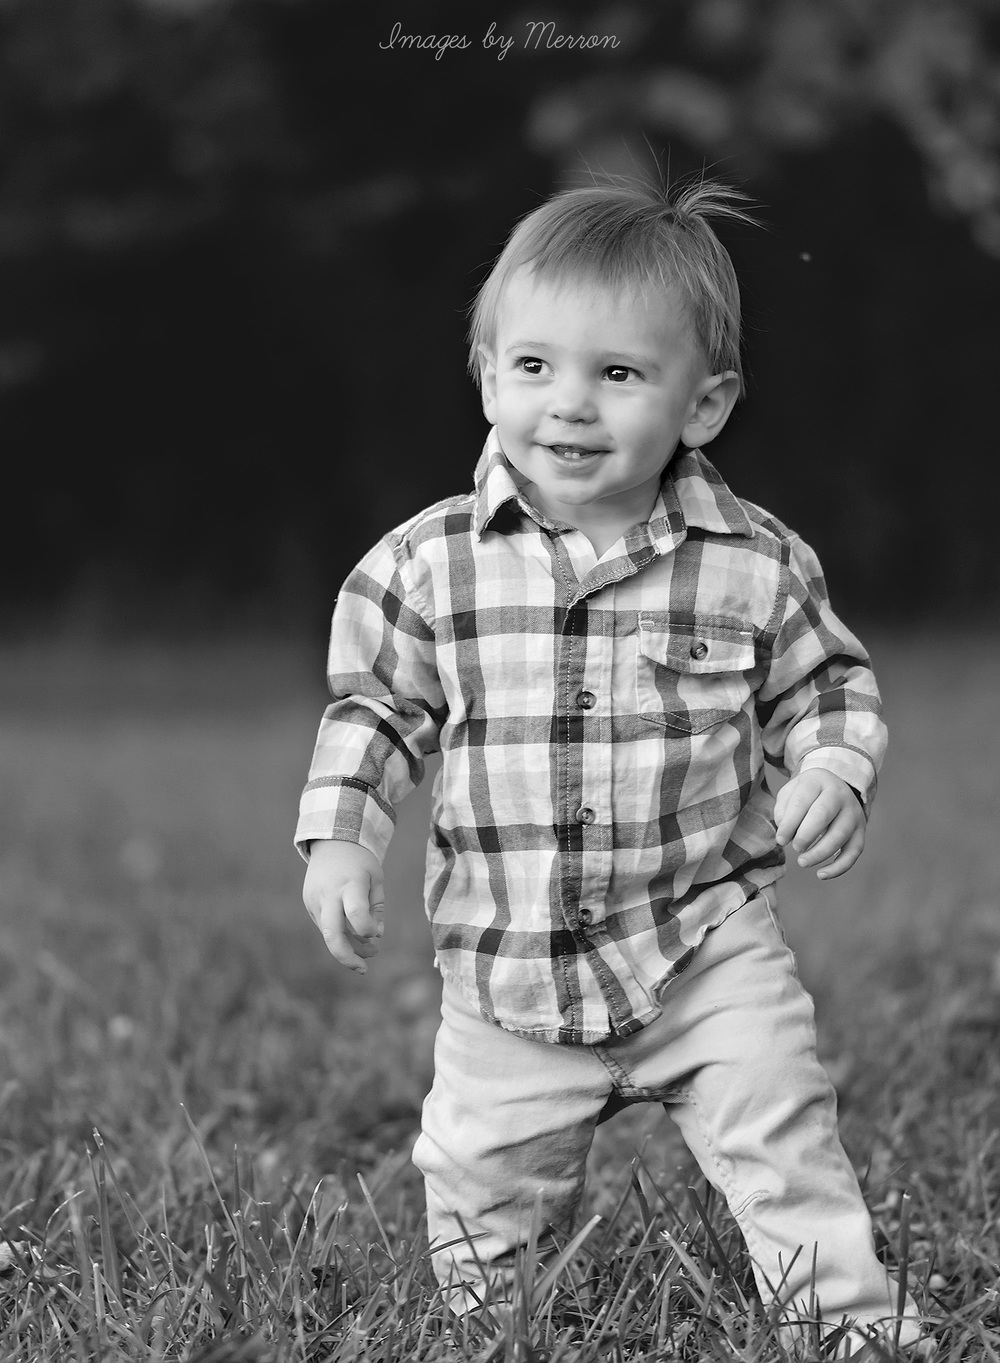 Black & White Photograph of Toddler in Ankeny, Iowa